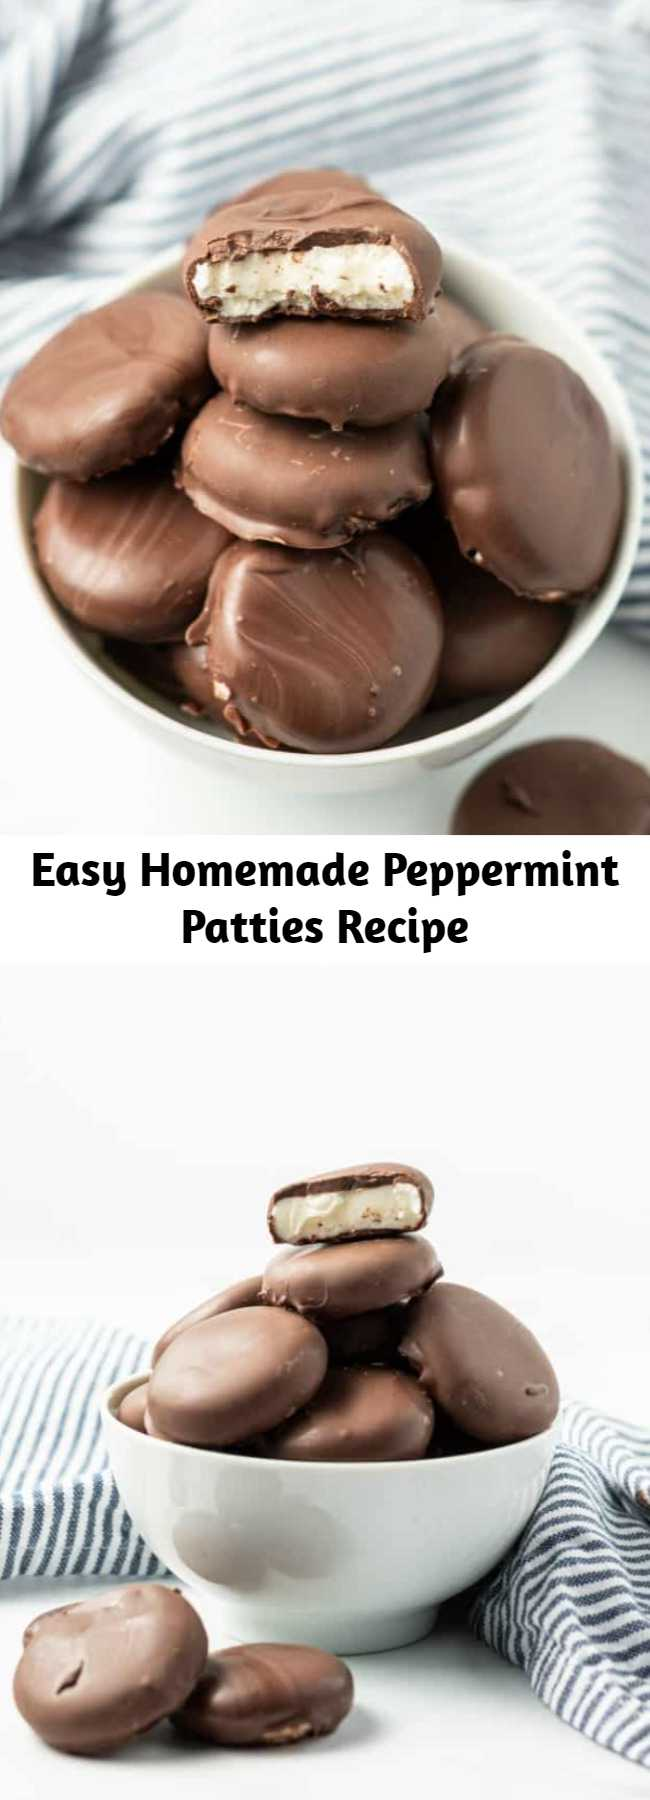 Easy Homemade Peppermint Patties Recipe - Peppermint filling wrapped in sweet chocolate; this Peppermint Patty recipe is easier than you ever realized. Skip the store bought candies and make your own! Shape them like footballs for a game day treat!